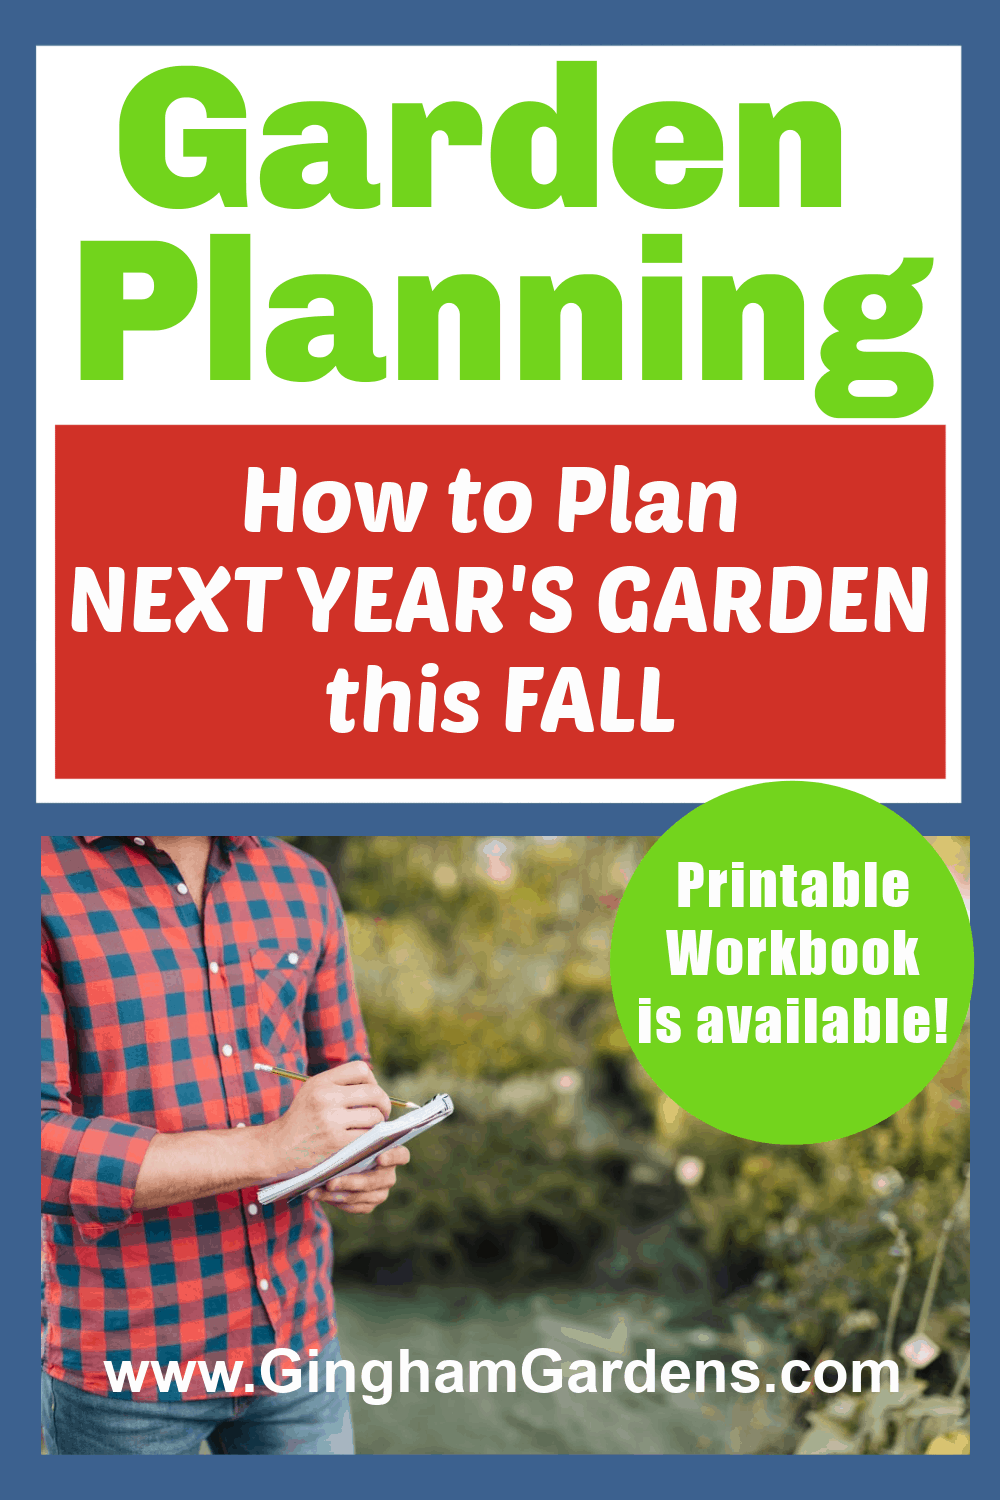 Image of Gardener taking notes with text overlay - Garden Planning